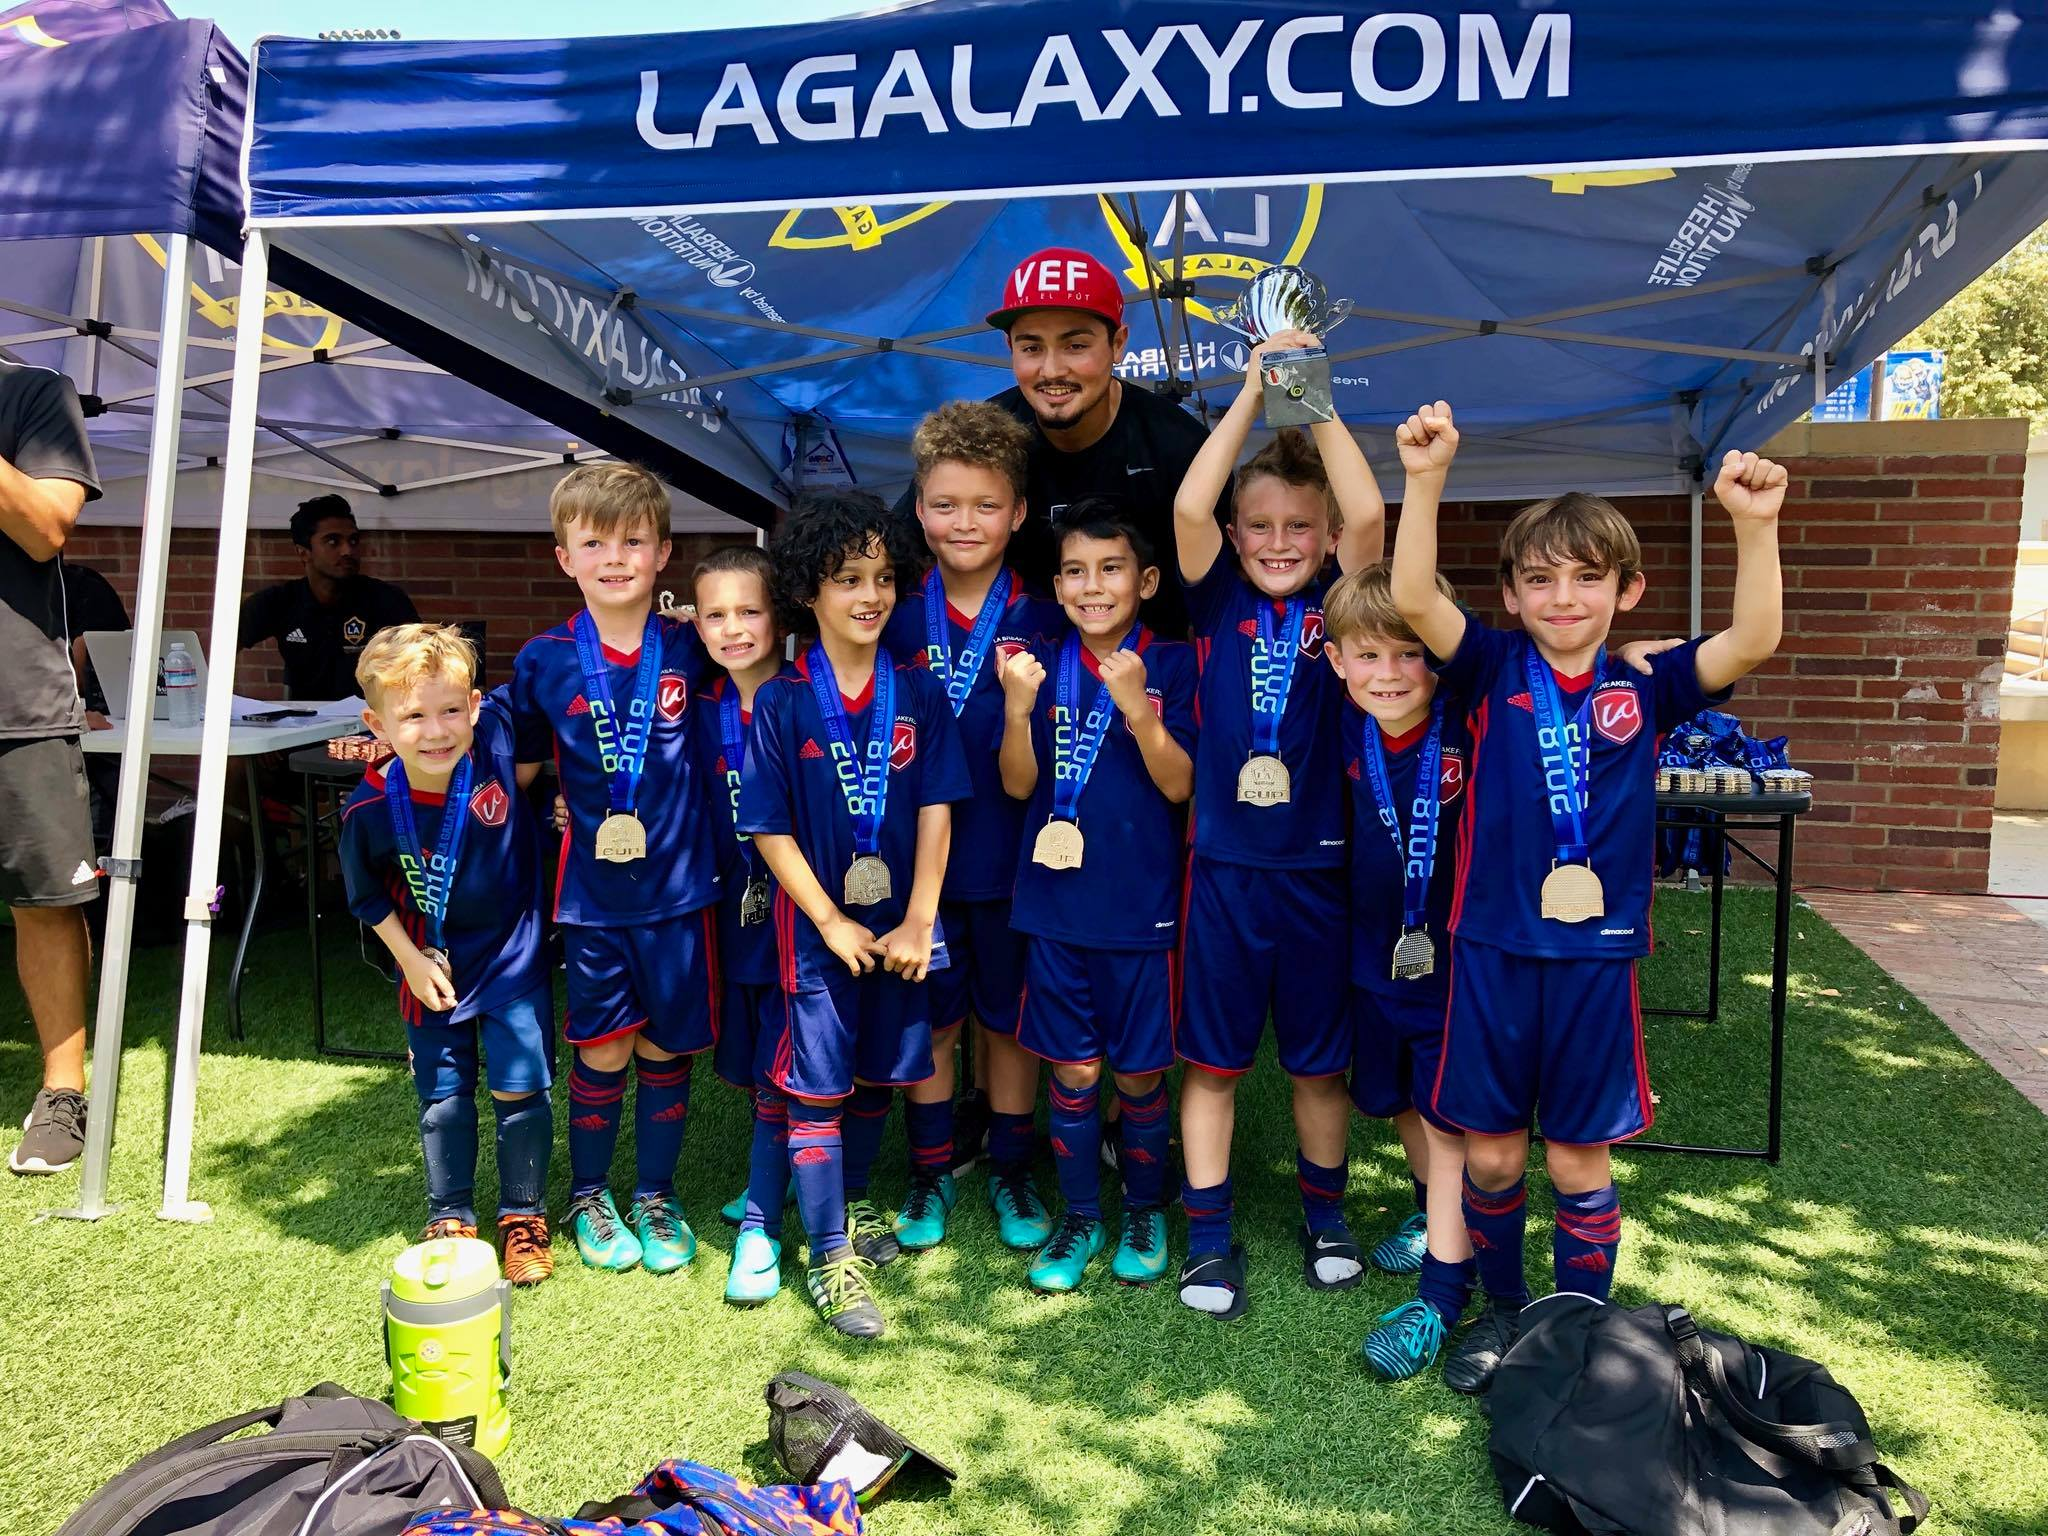 LA Breakers B2011 won the LA Galaxy Tournament!